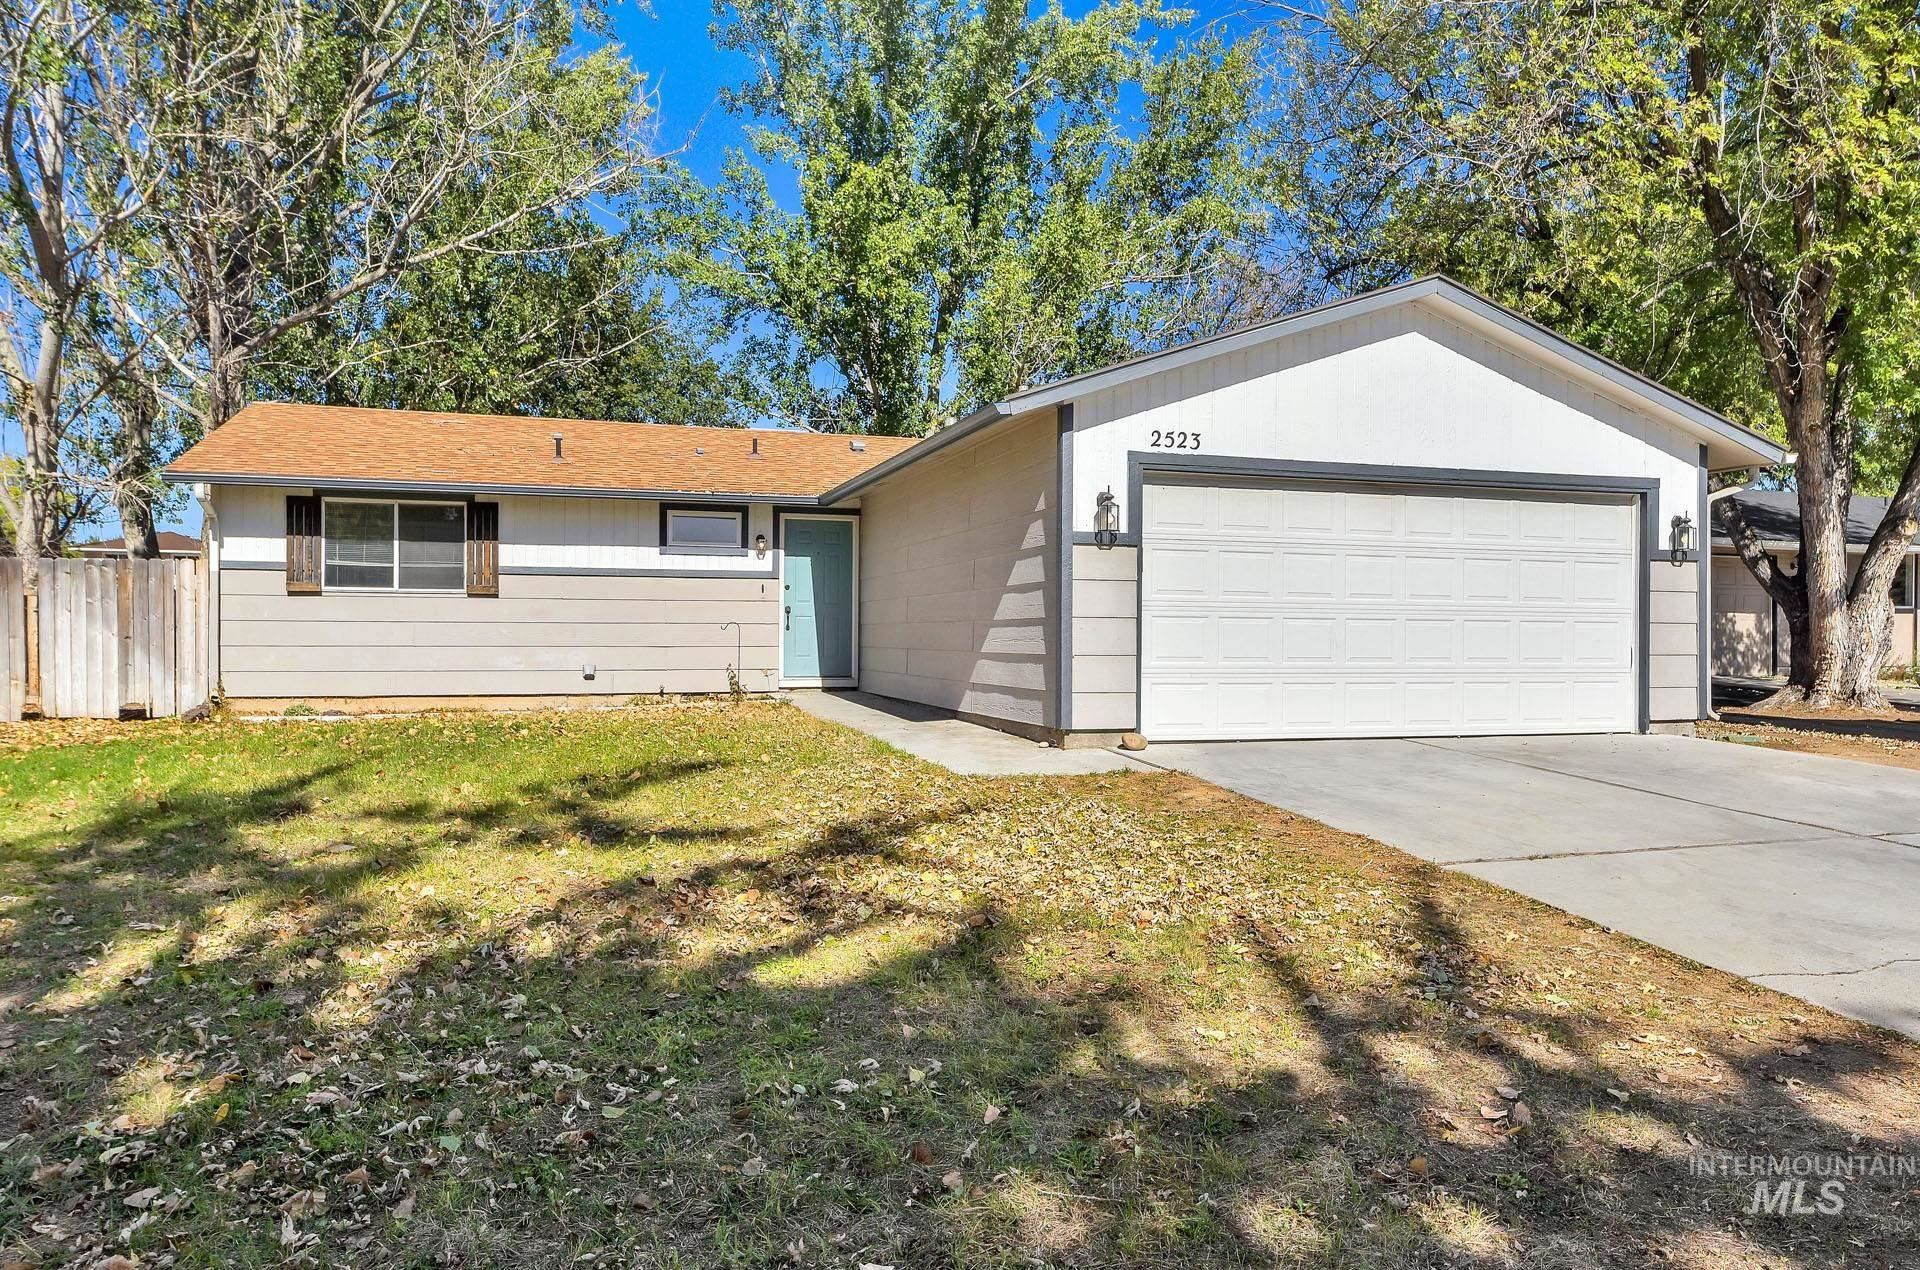 2523 Armstrong Pl, Boise, ID 83704 - MLS#: 98822486